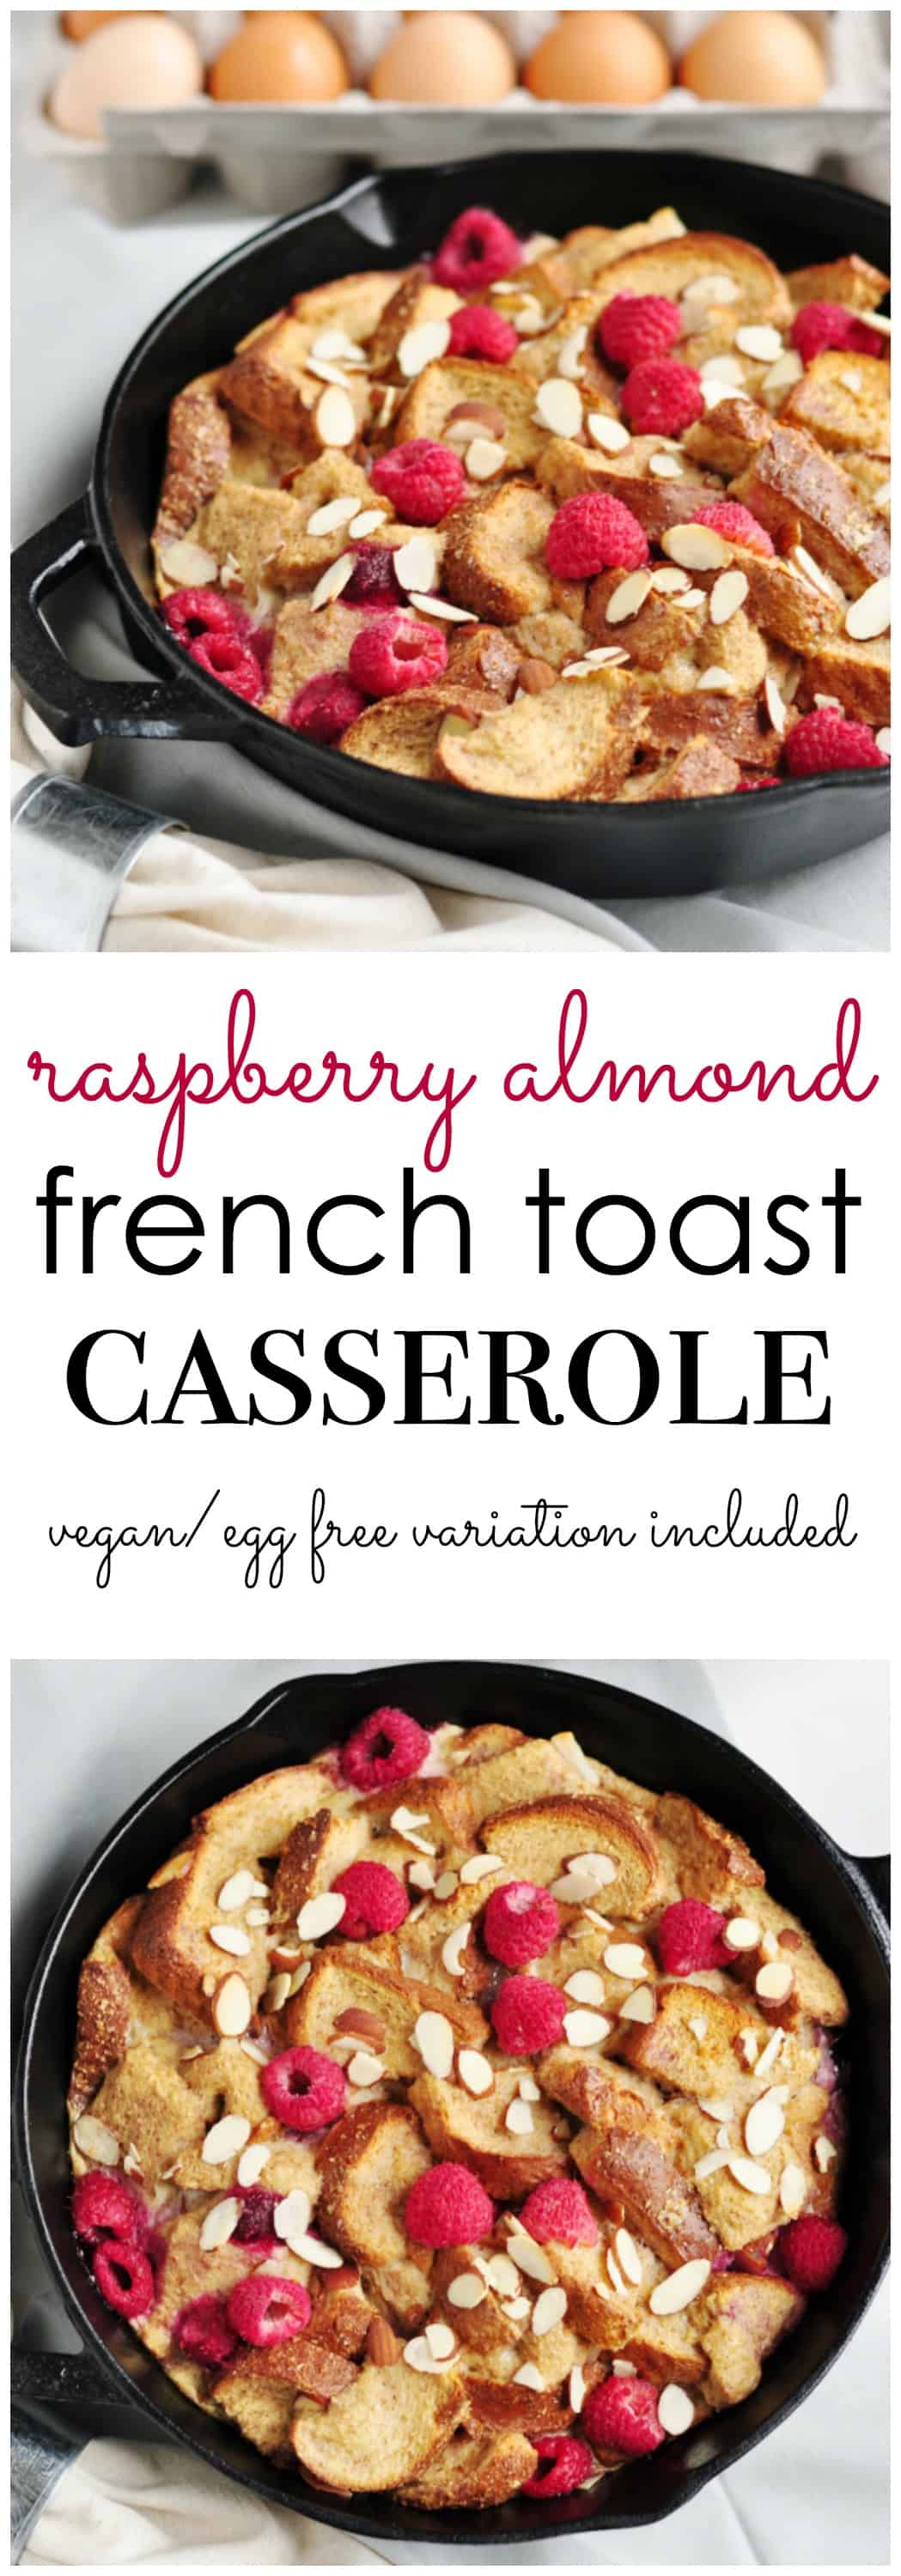 Raspberry Almond French Toast Casserole. Be Whole. Be You.